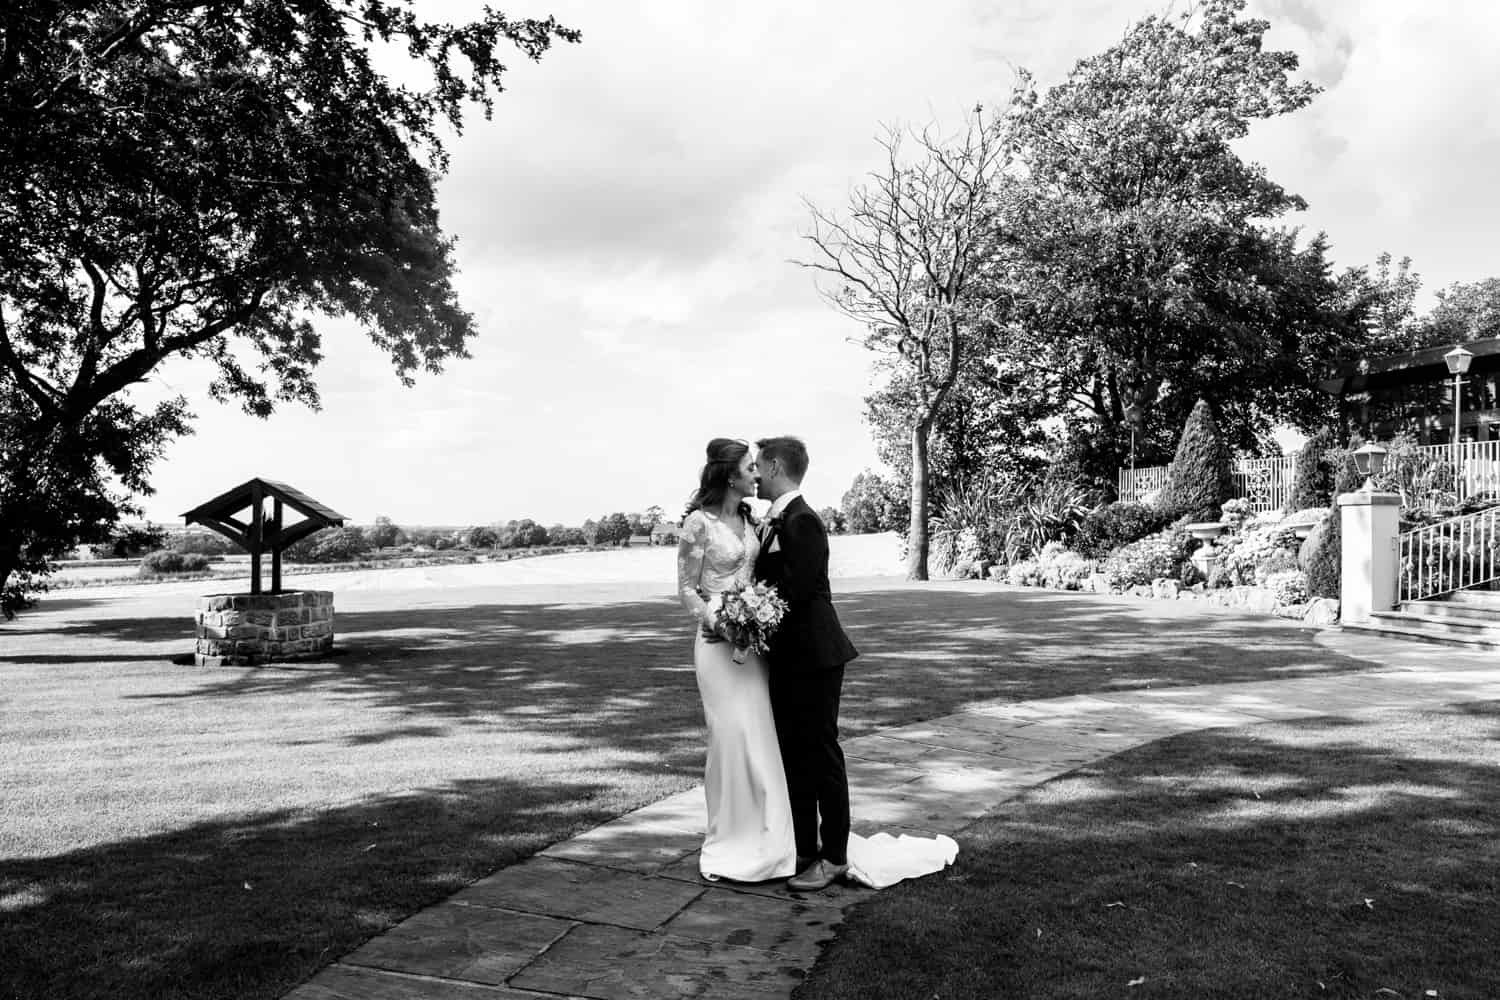 West Tower wedding photography by Ian MacMichael photography